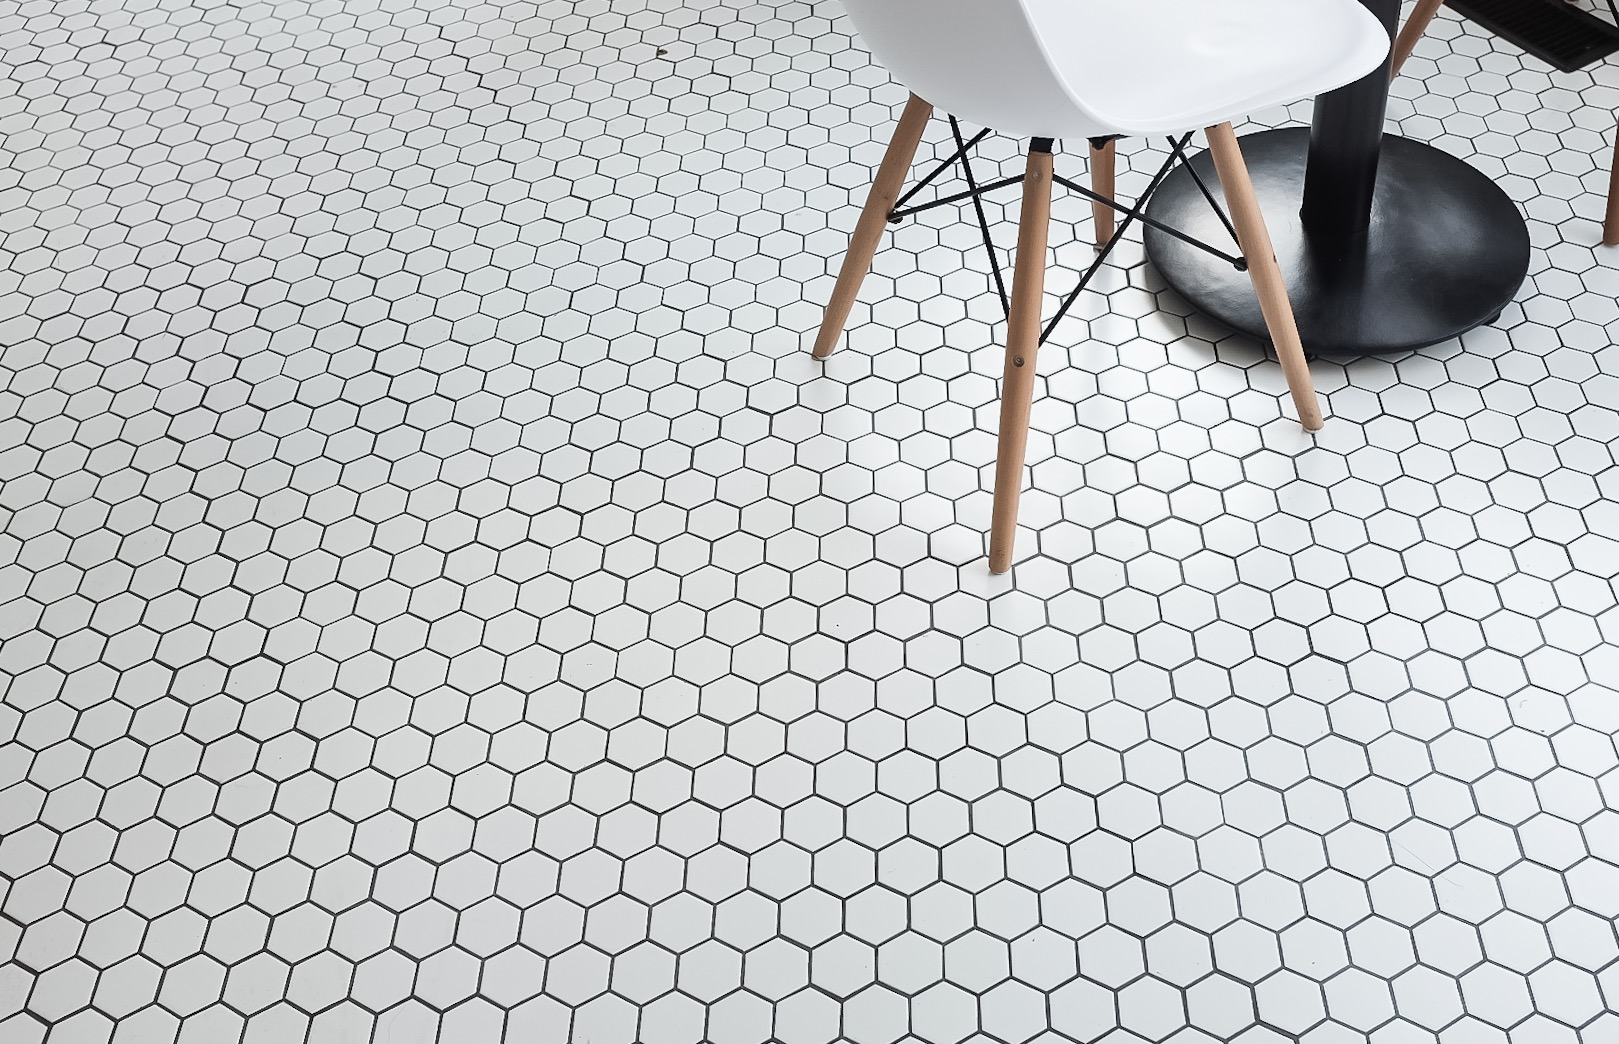 Gorgeous honeycomb tiles that are what instagrammer dreams are made of.